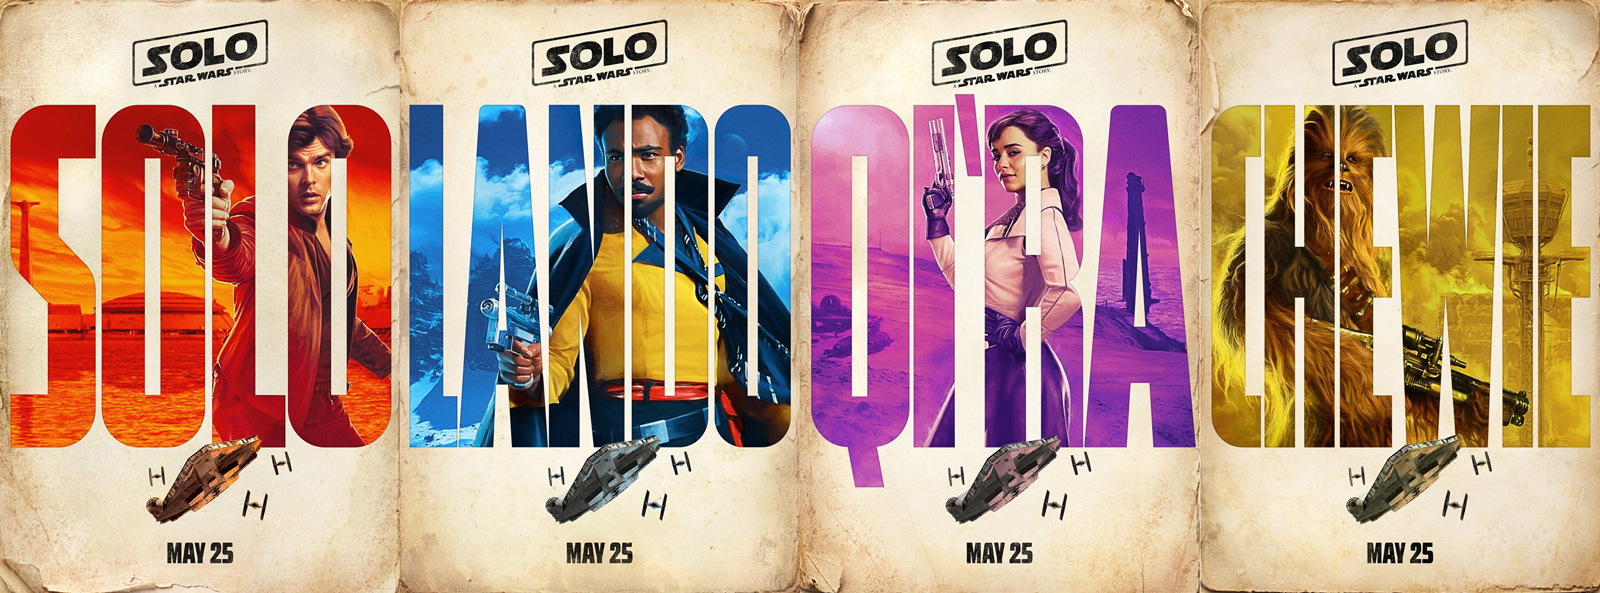 Watch: The full Solo: A Star Wars Story teaser trailer is here 1